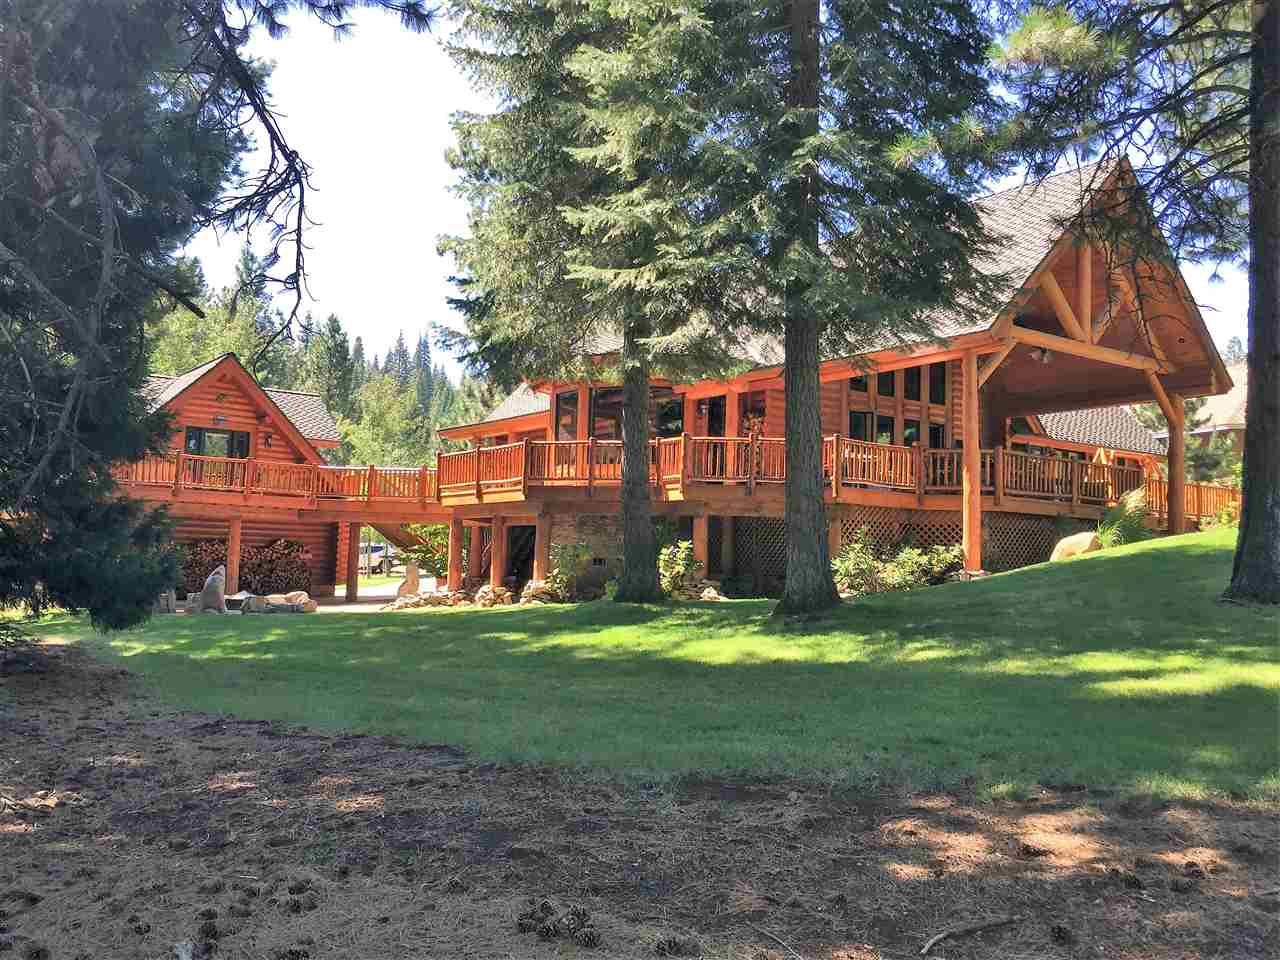 Single Family Home for Active at 489 Dinsmore Drive 489 Dinsmore Drive Lake Almanor, California 96137 United States